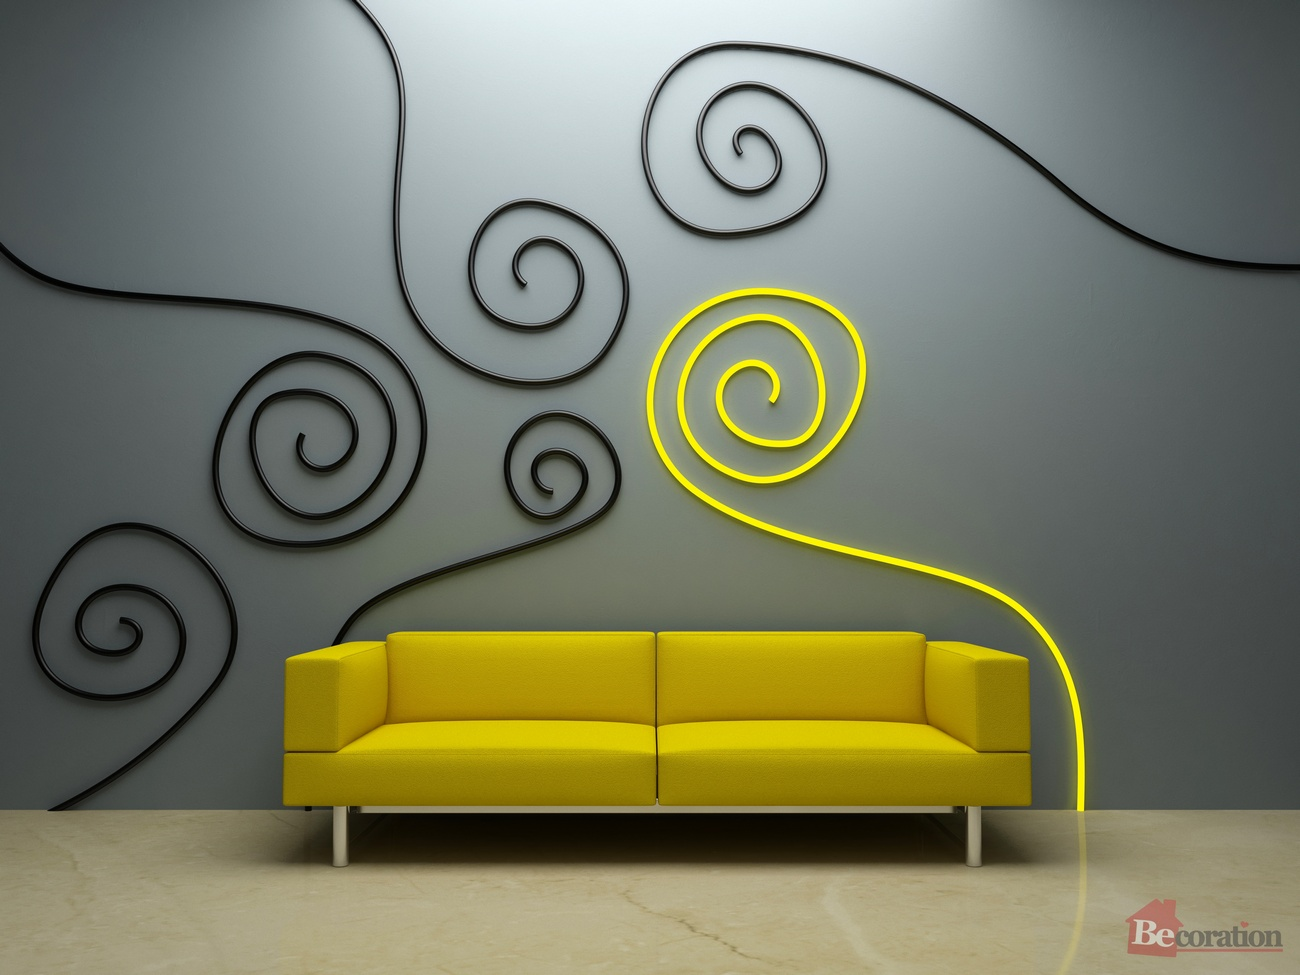 Interior design - Yellow couch and decor